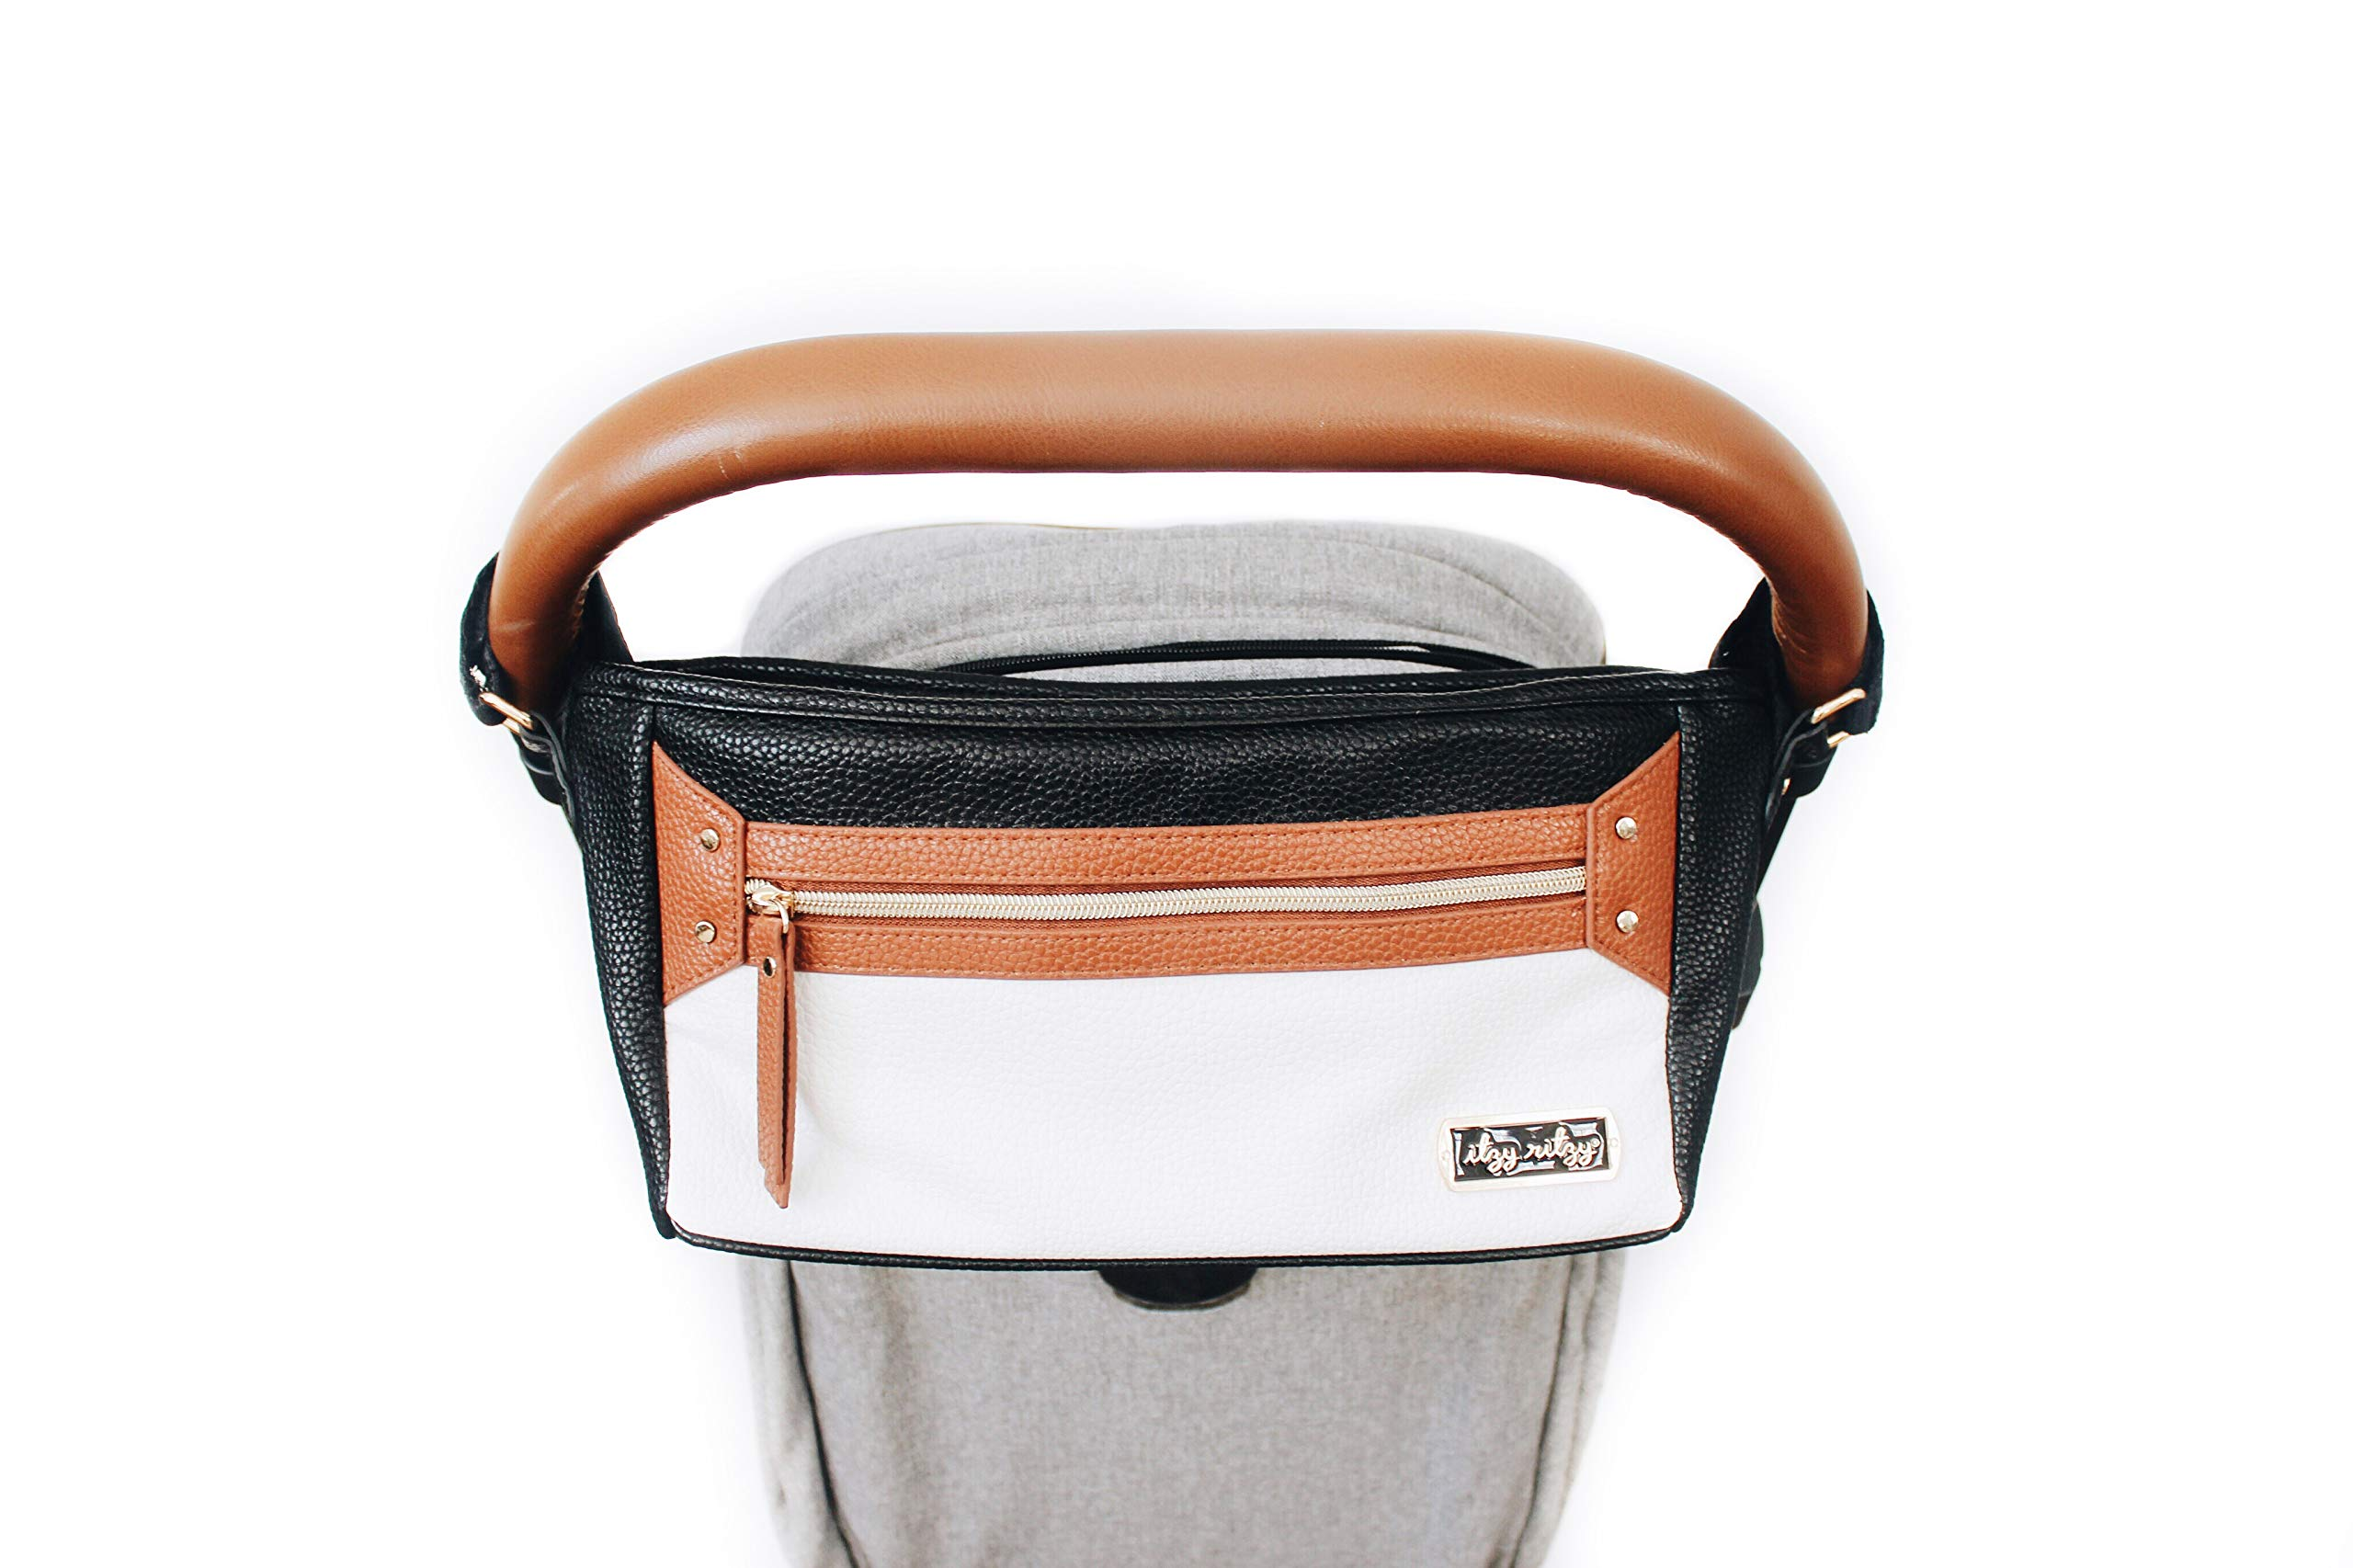 Itzy Ritzy Adjustable Stroller Caddy - Stroller Organizer Featuring Two Built-in Pockets, Front Zippered Pocket and Adjustable Straps to Fit Nearly Any Stroller, Coffee and Cream by Itzy Ritzy (Image #9)